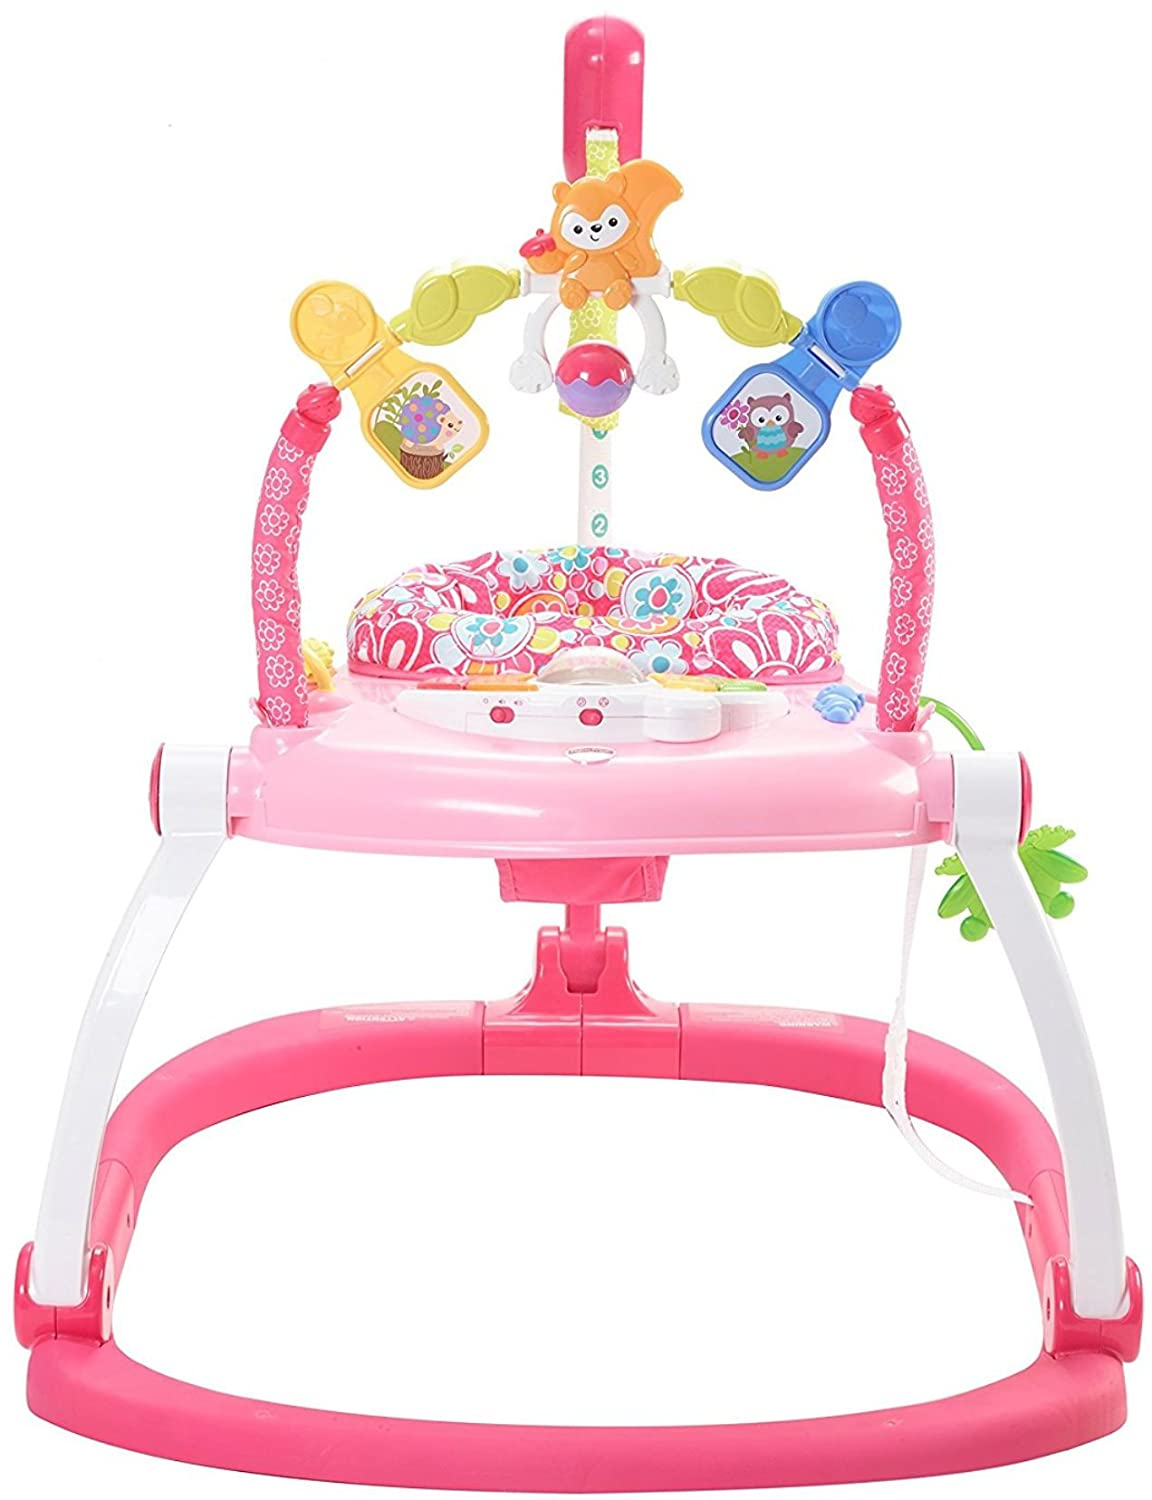 Fisher-Price Floral Confetti SpaceSaver Jumperoo Amazonca/FISNE DKT02